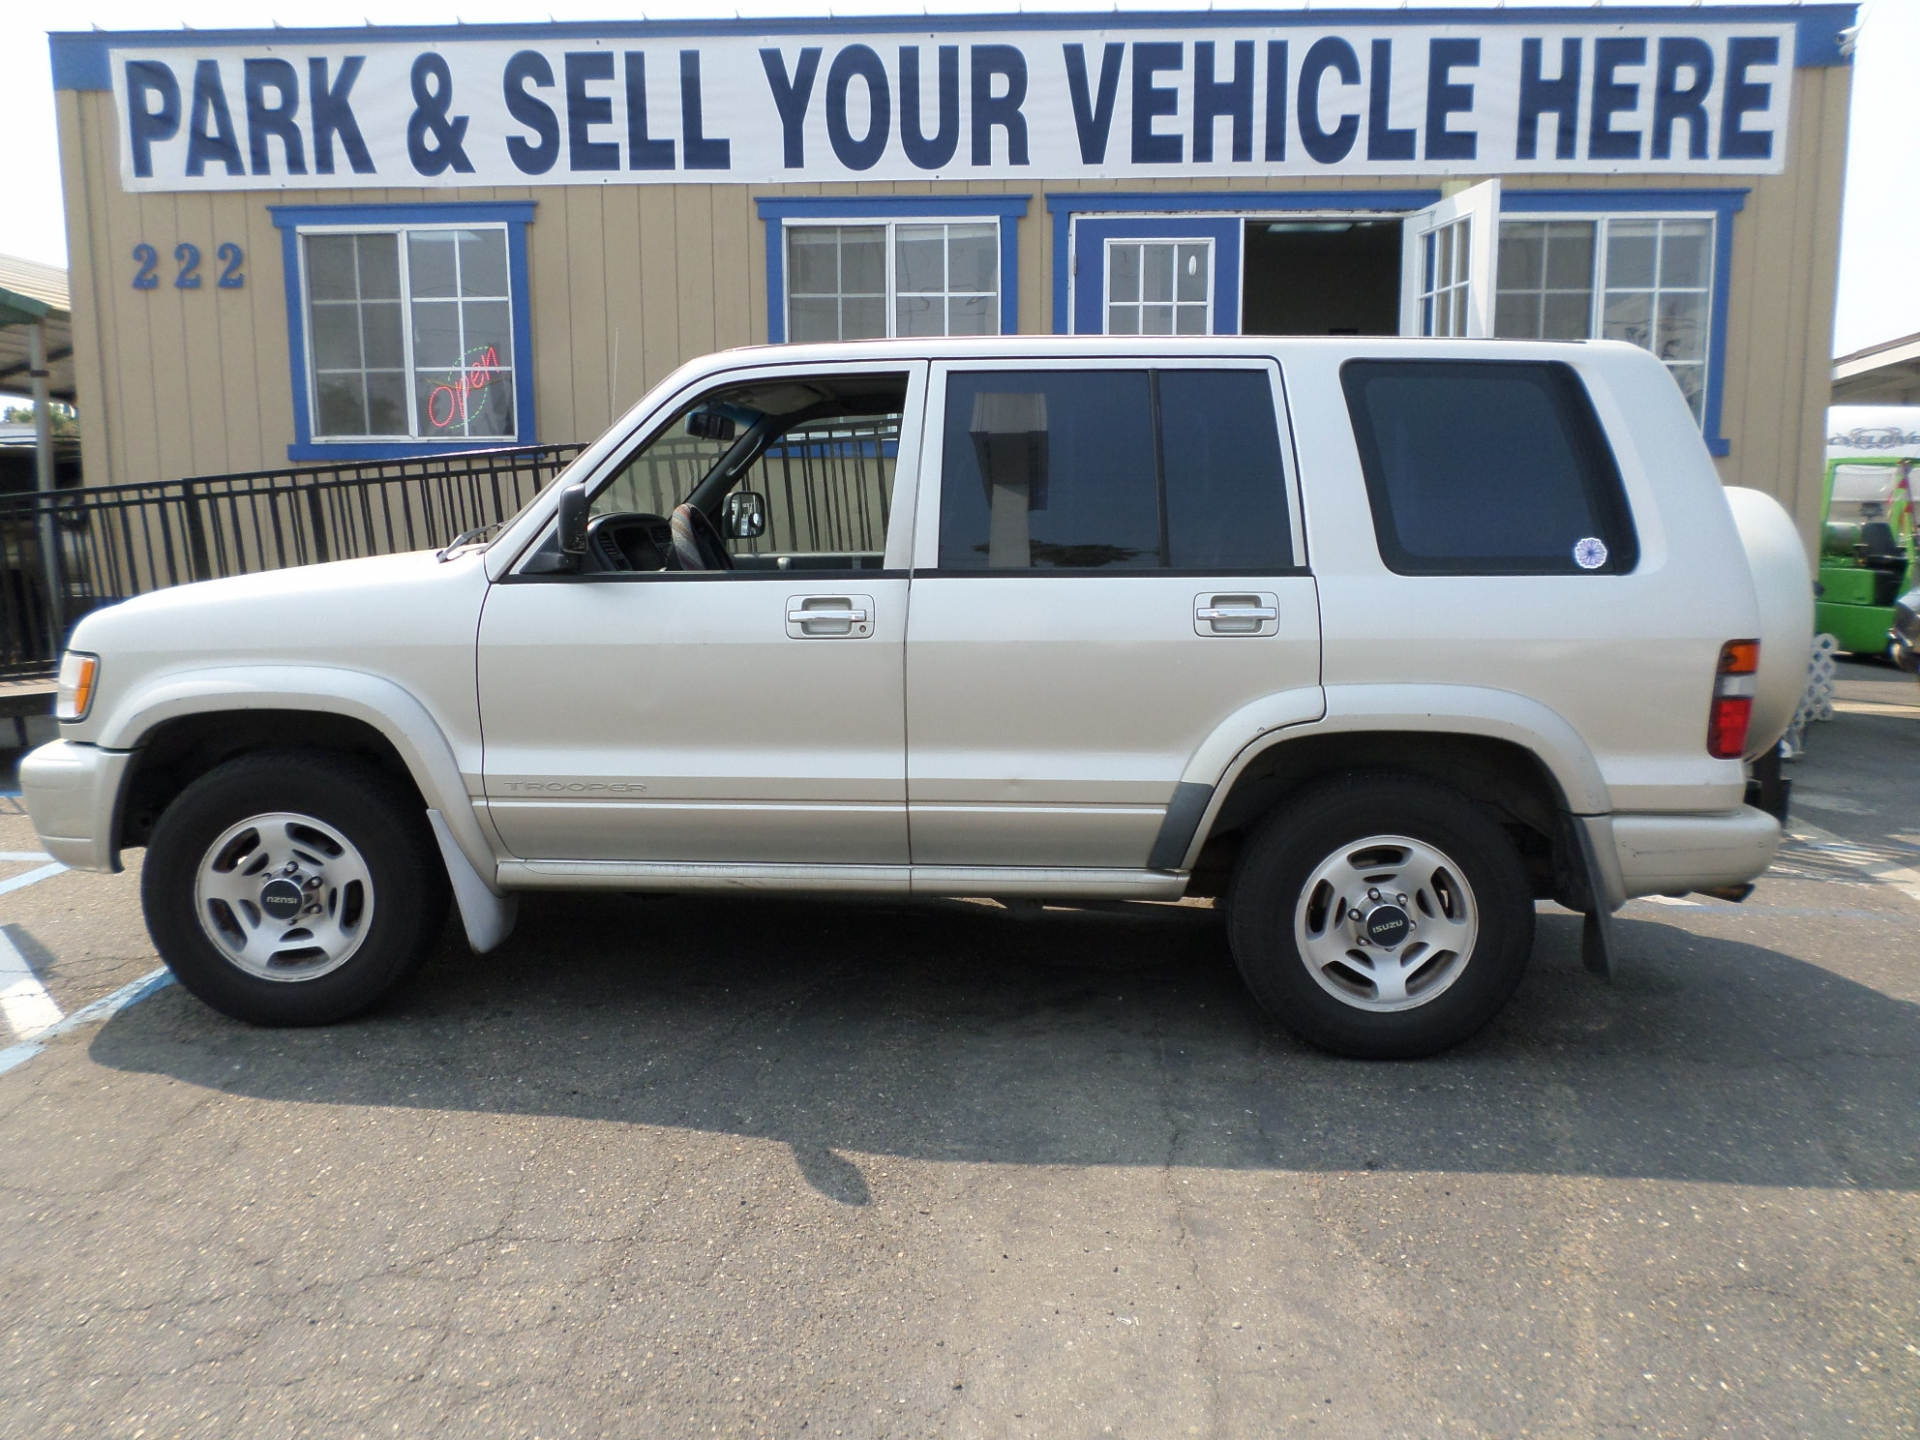 Suv For Sale 2000 Isuzu Rodeo Ls In Lodi Stockton Ca Lodi Park And Sell